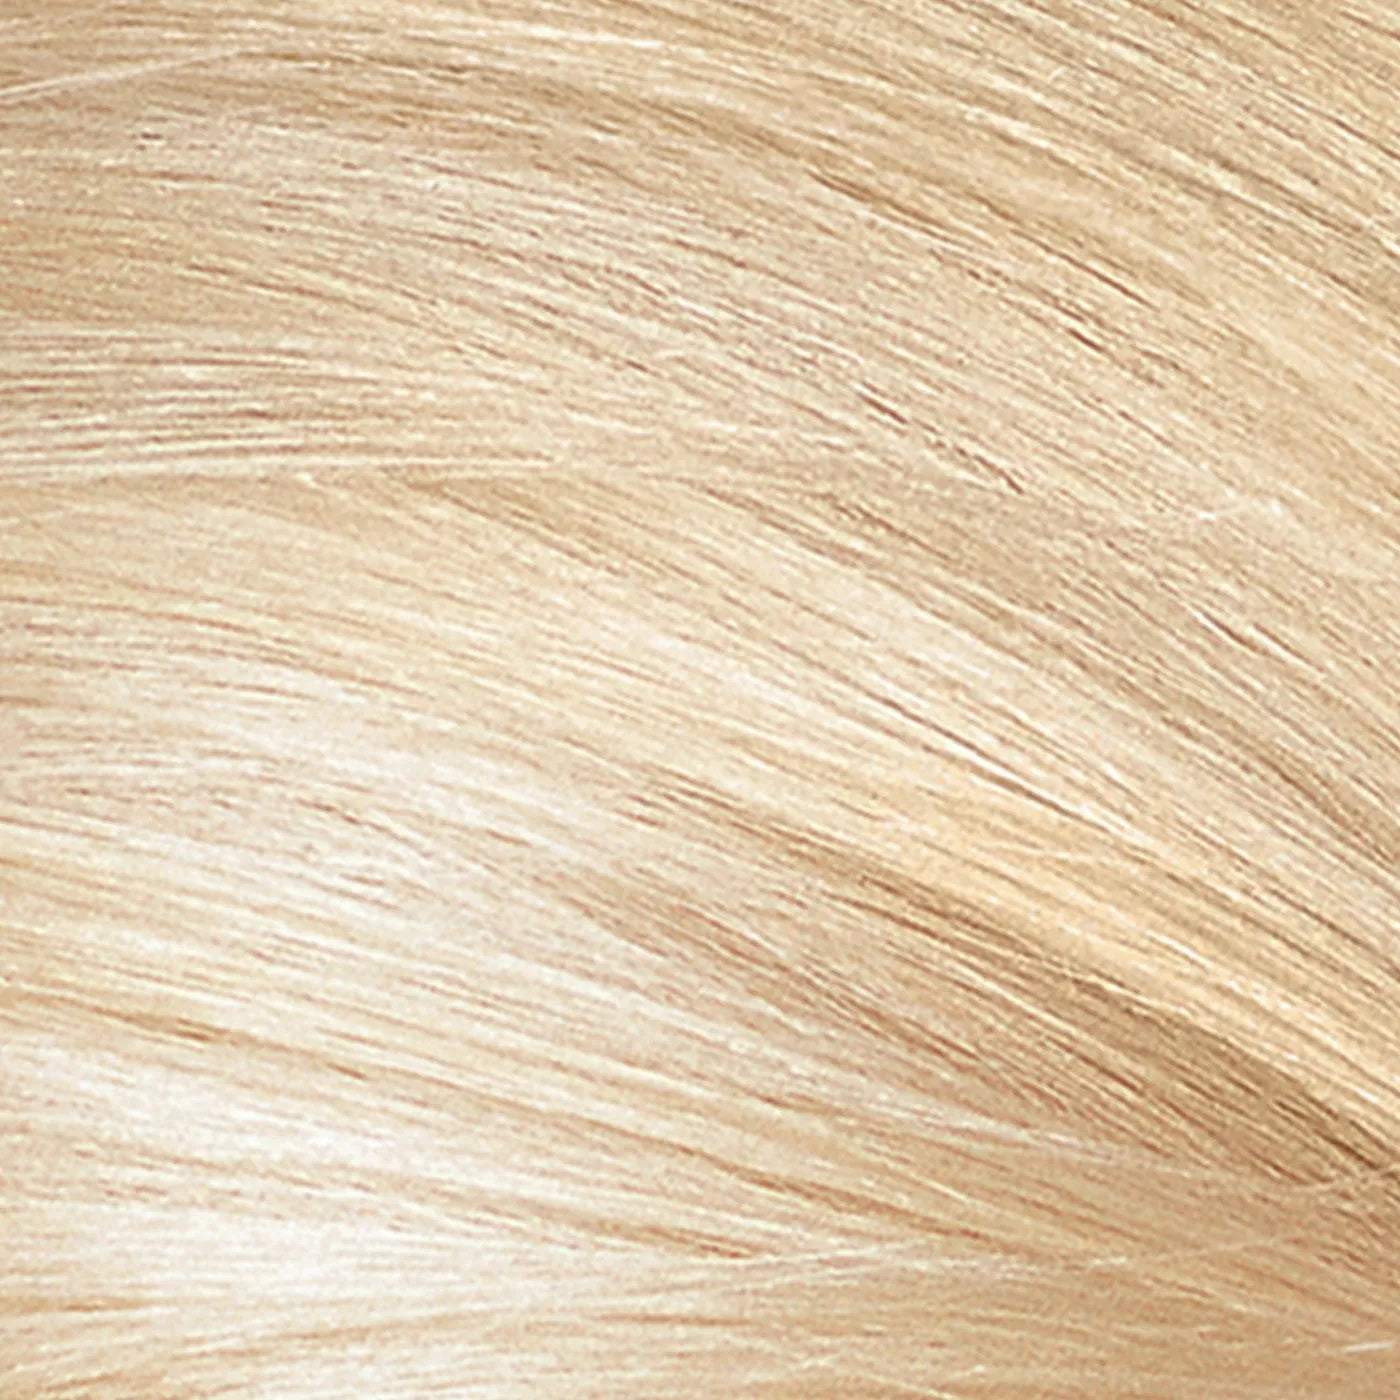 Revlon Colorsilk Beautiful Color Permanent Hair Color, 04 Ultra Light Natural Blonde